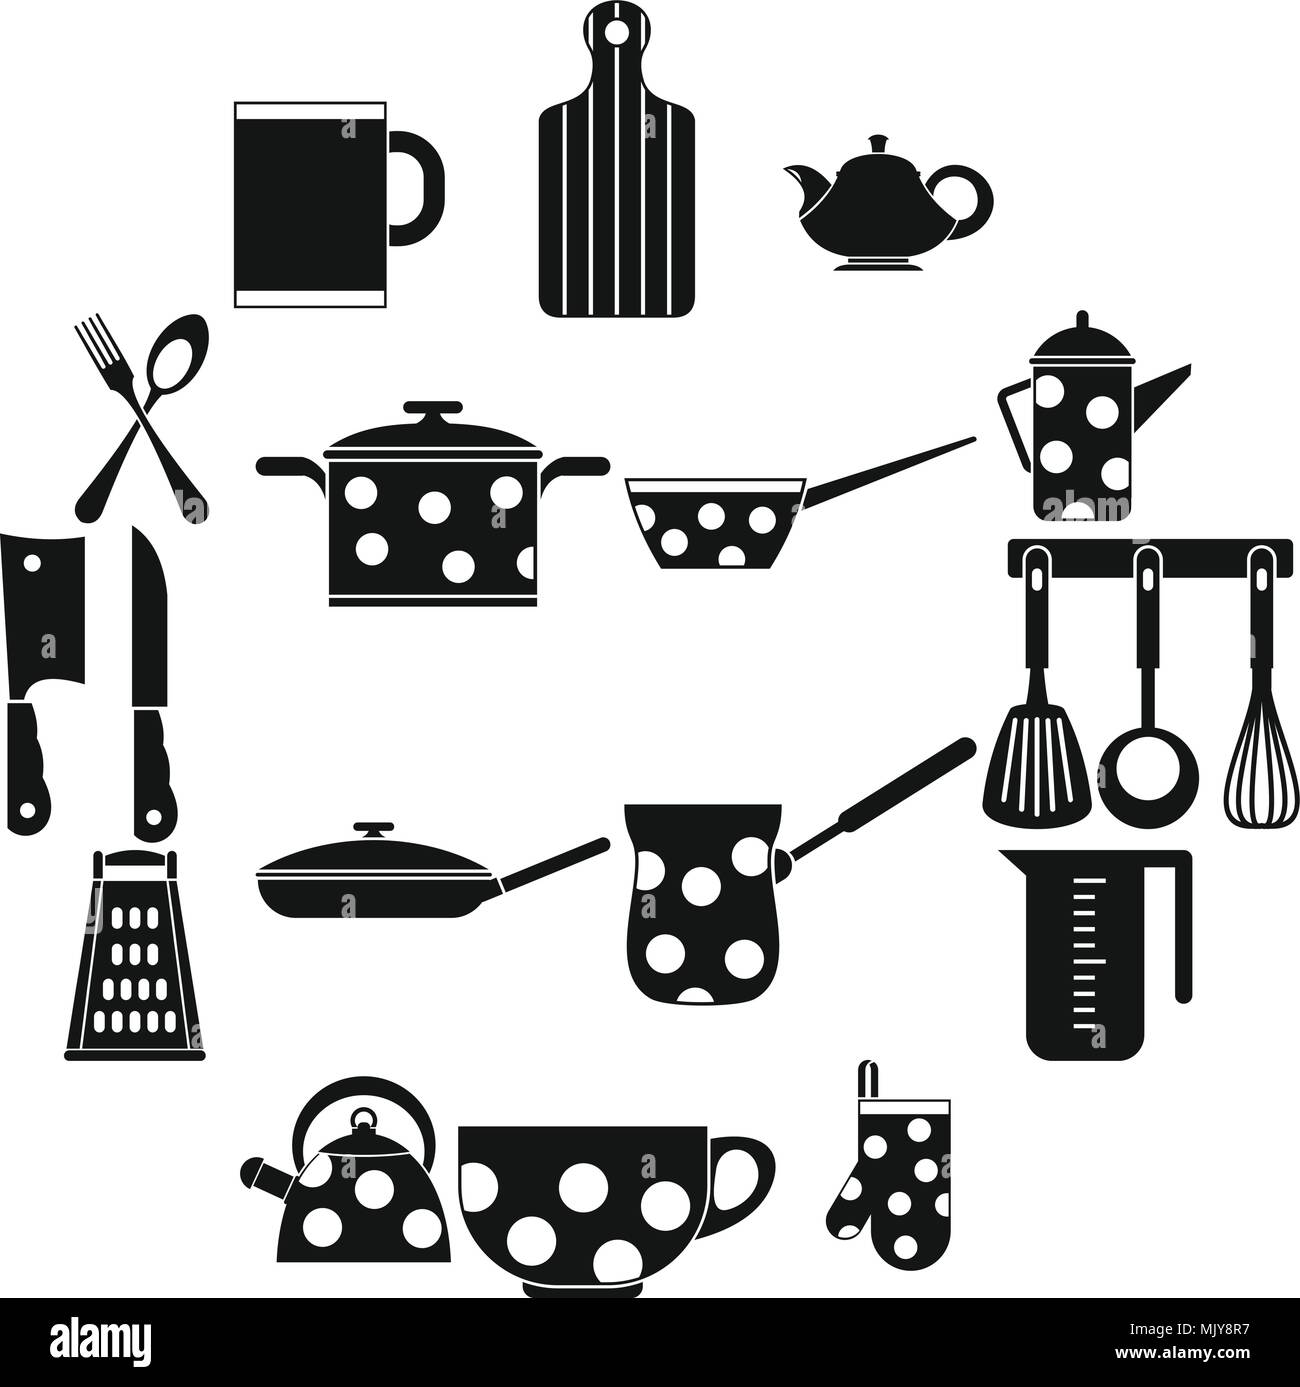 Kitchen tools and utensils icons, simple style - Stock Image